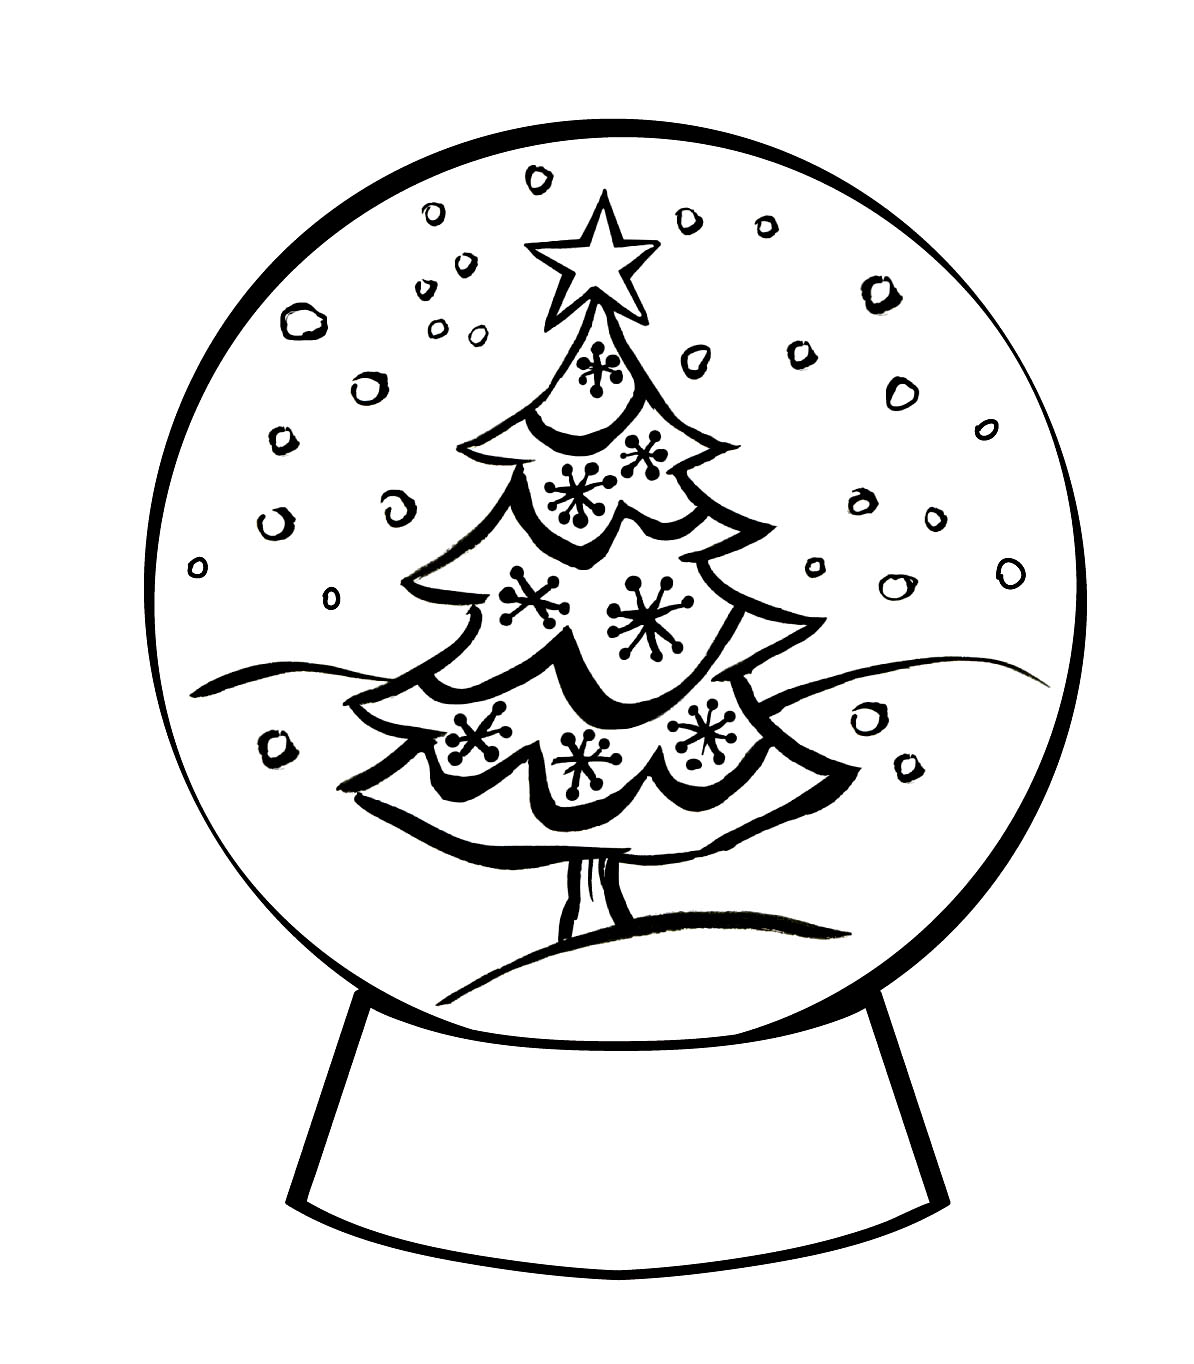 snow globe coloring page snow globe coloring pages for kids colours drawing wallpaper page snow coloring globe